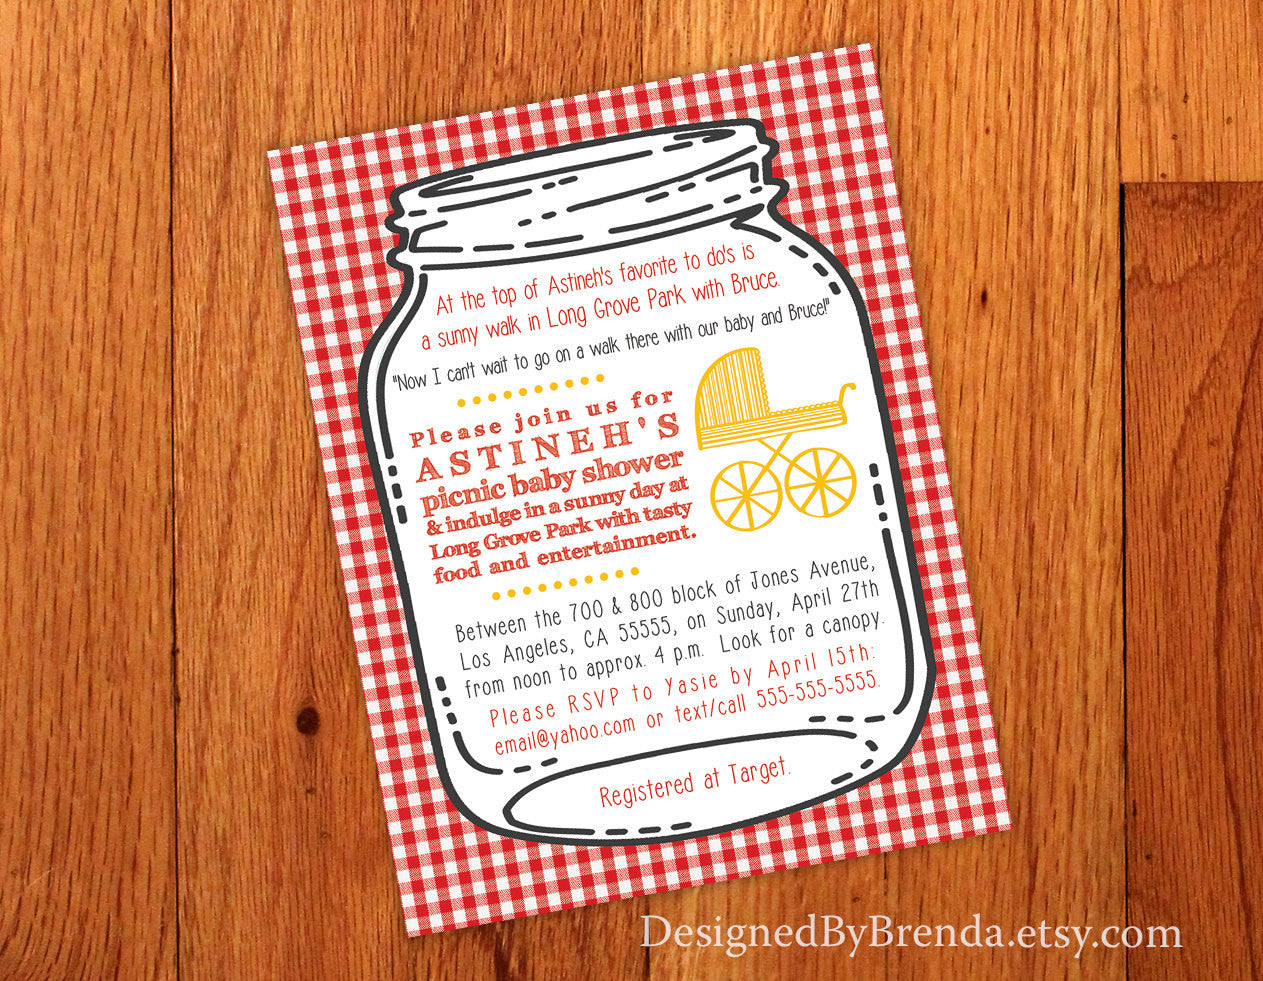 Canning Jar Wedding or Baby Shower Invitation with Red & White Gingham Background